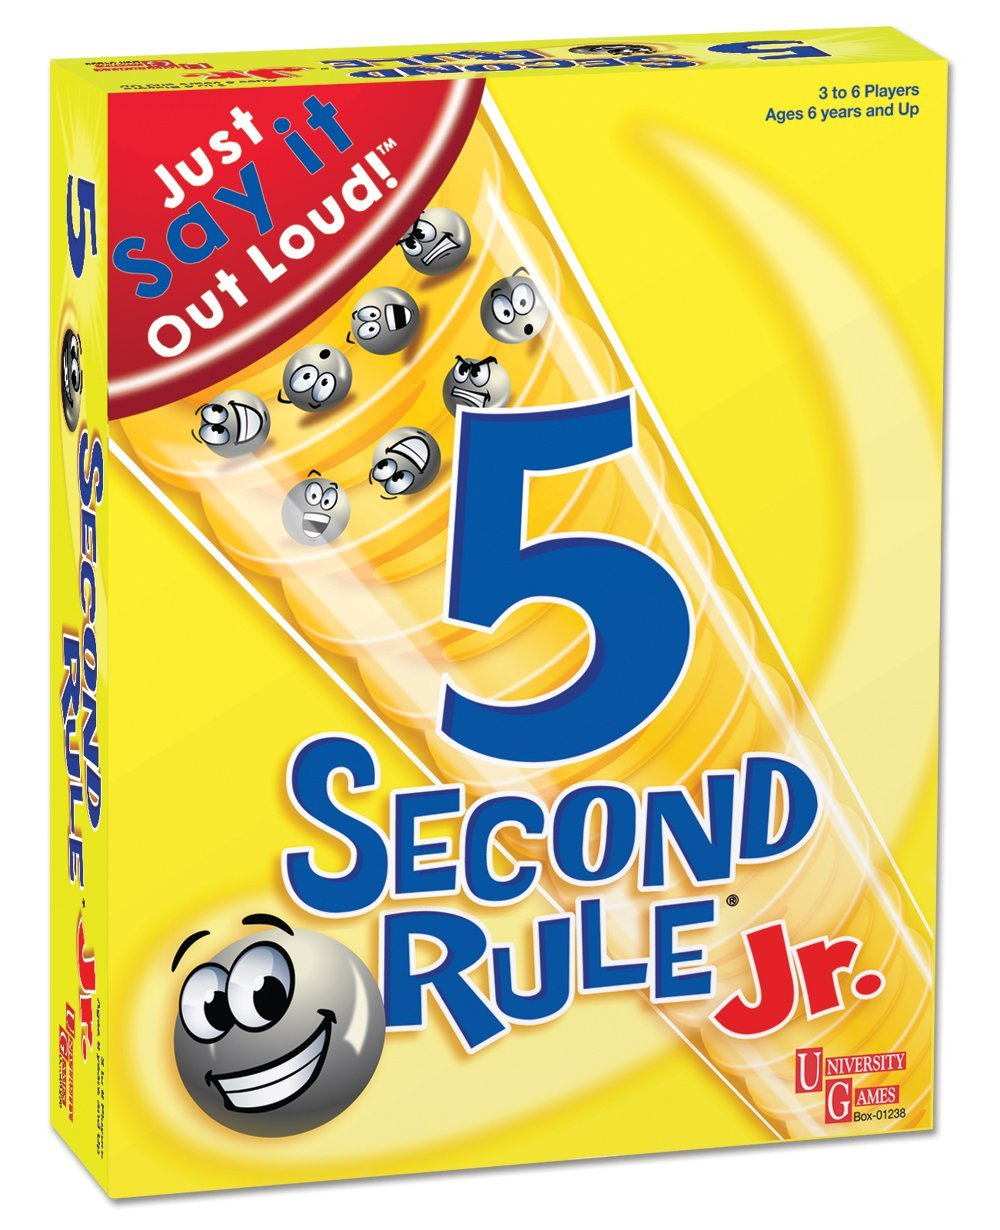 5 Second Rule Junior Game